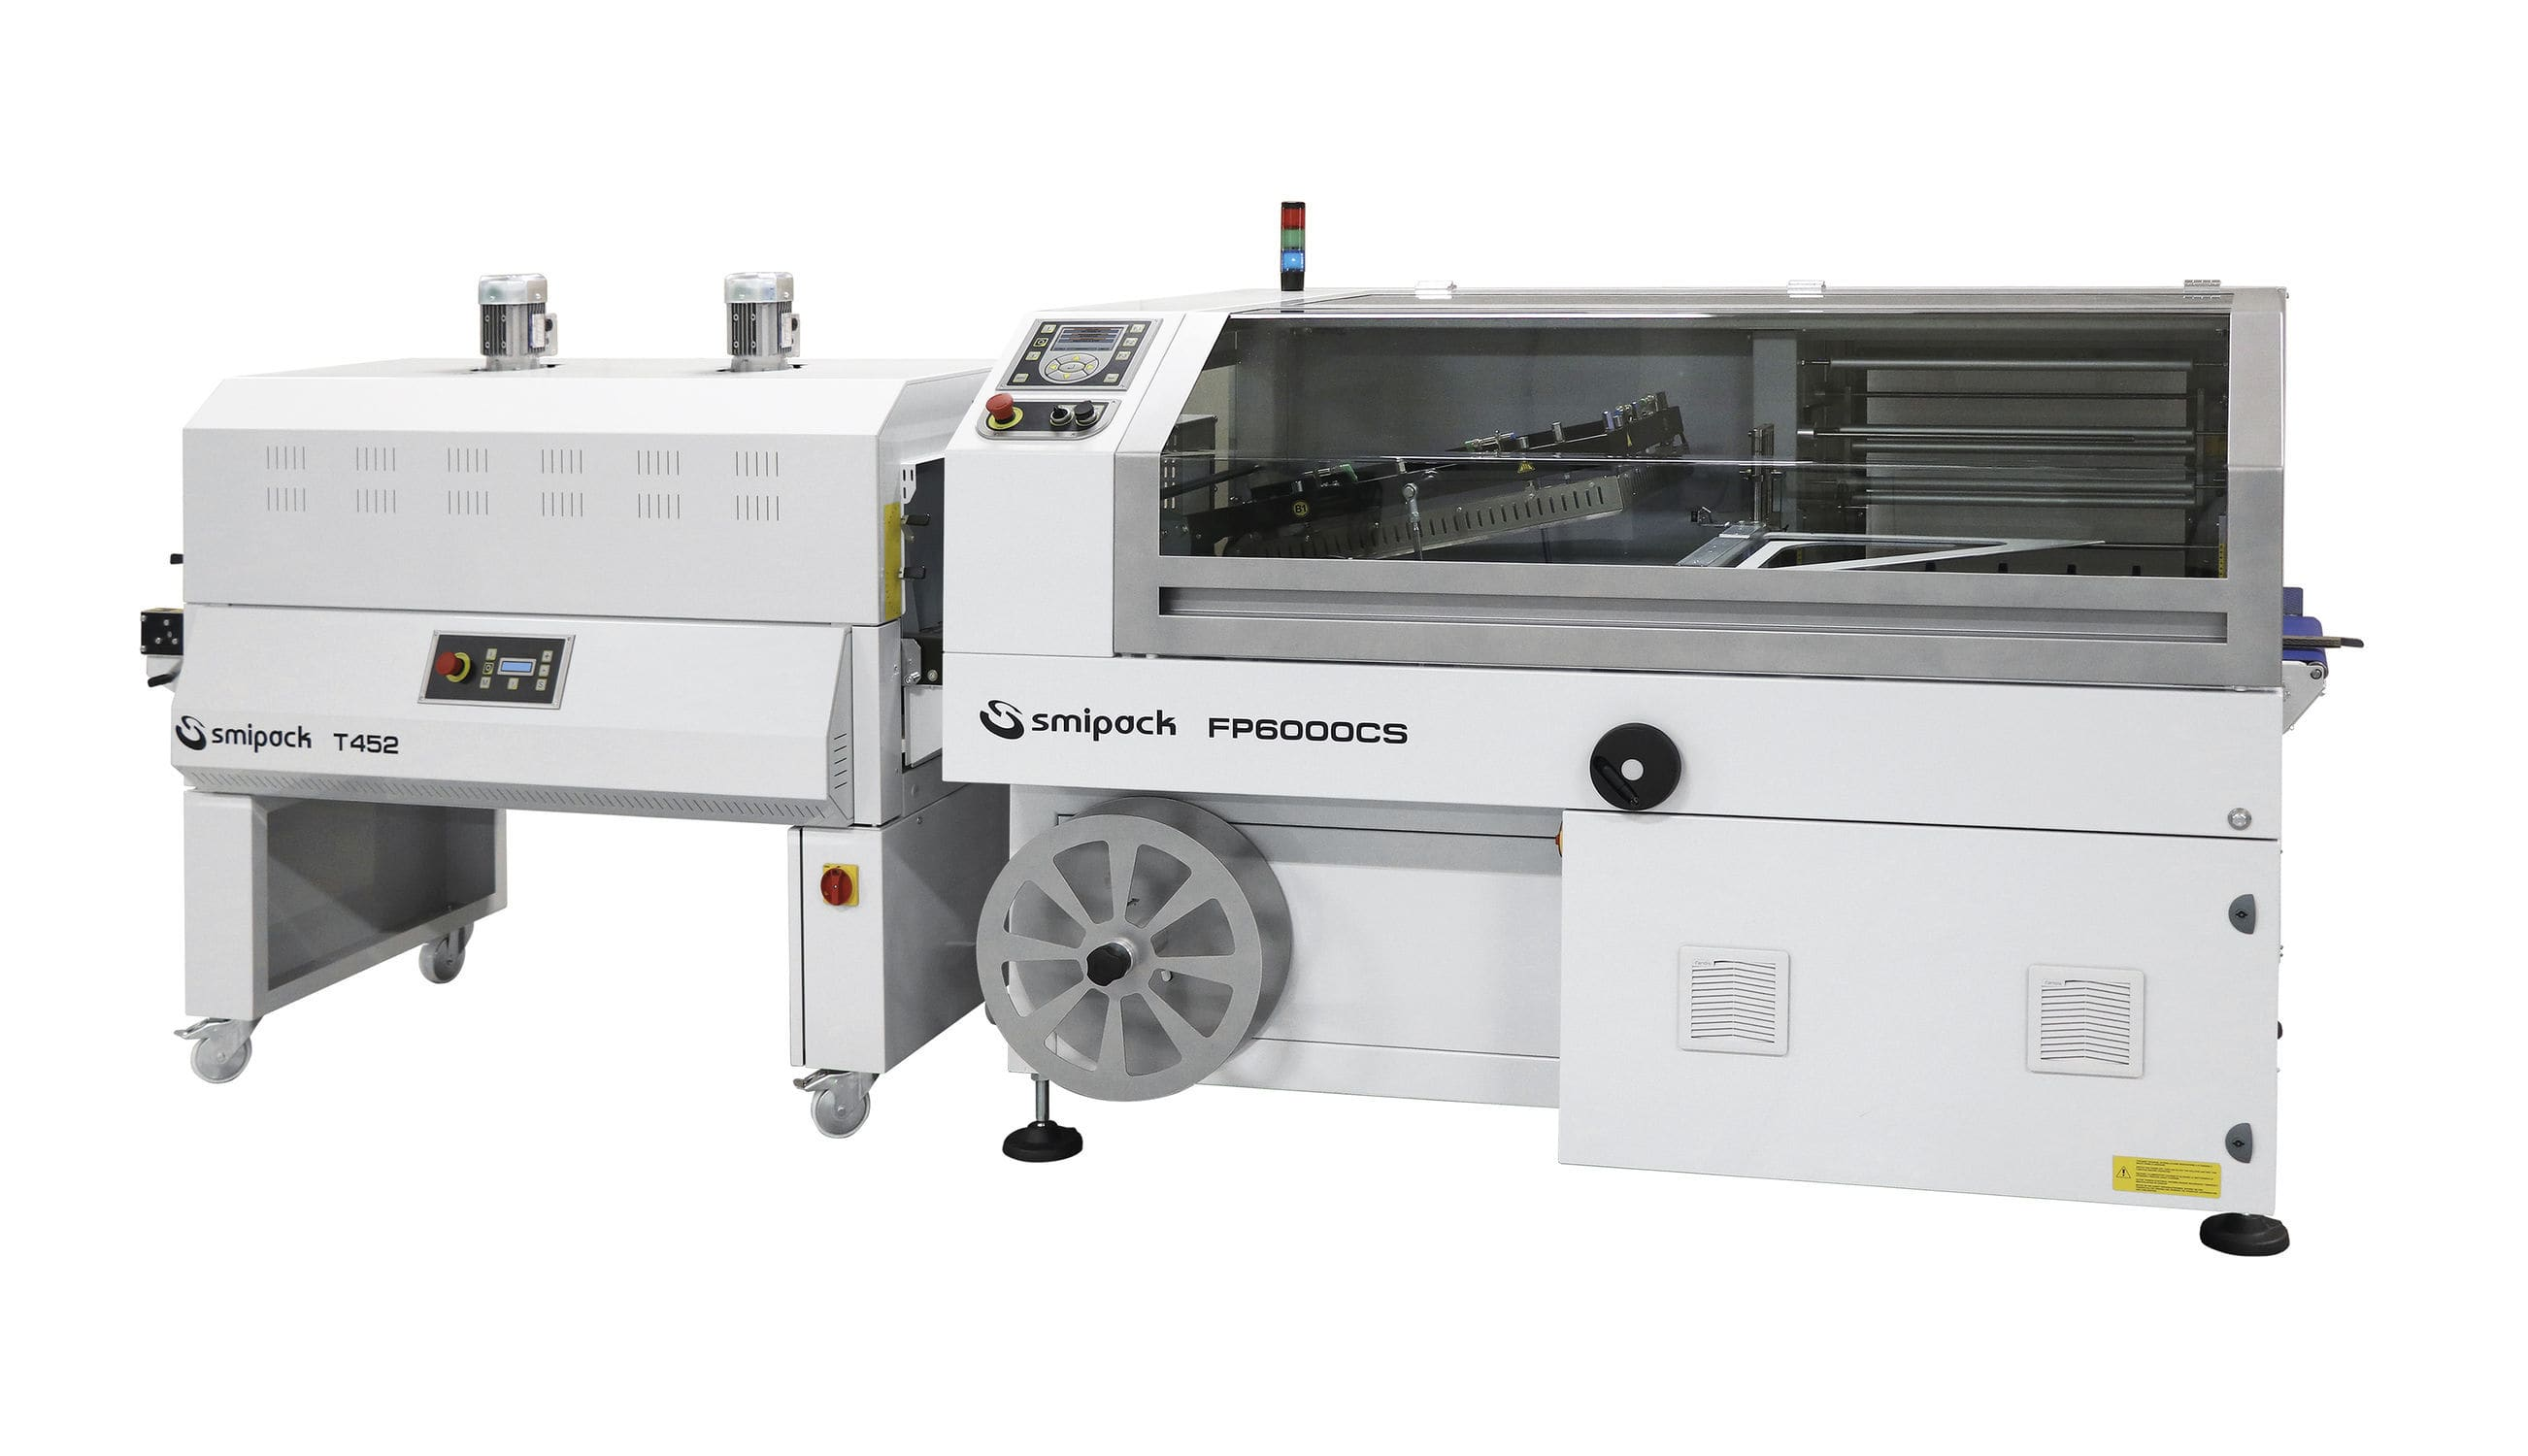 SMI Pack FP 6000CS automatic sealer